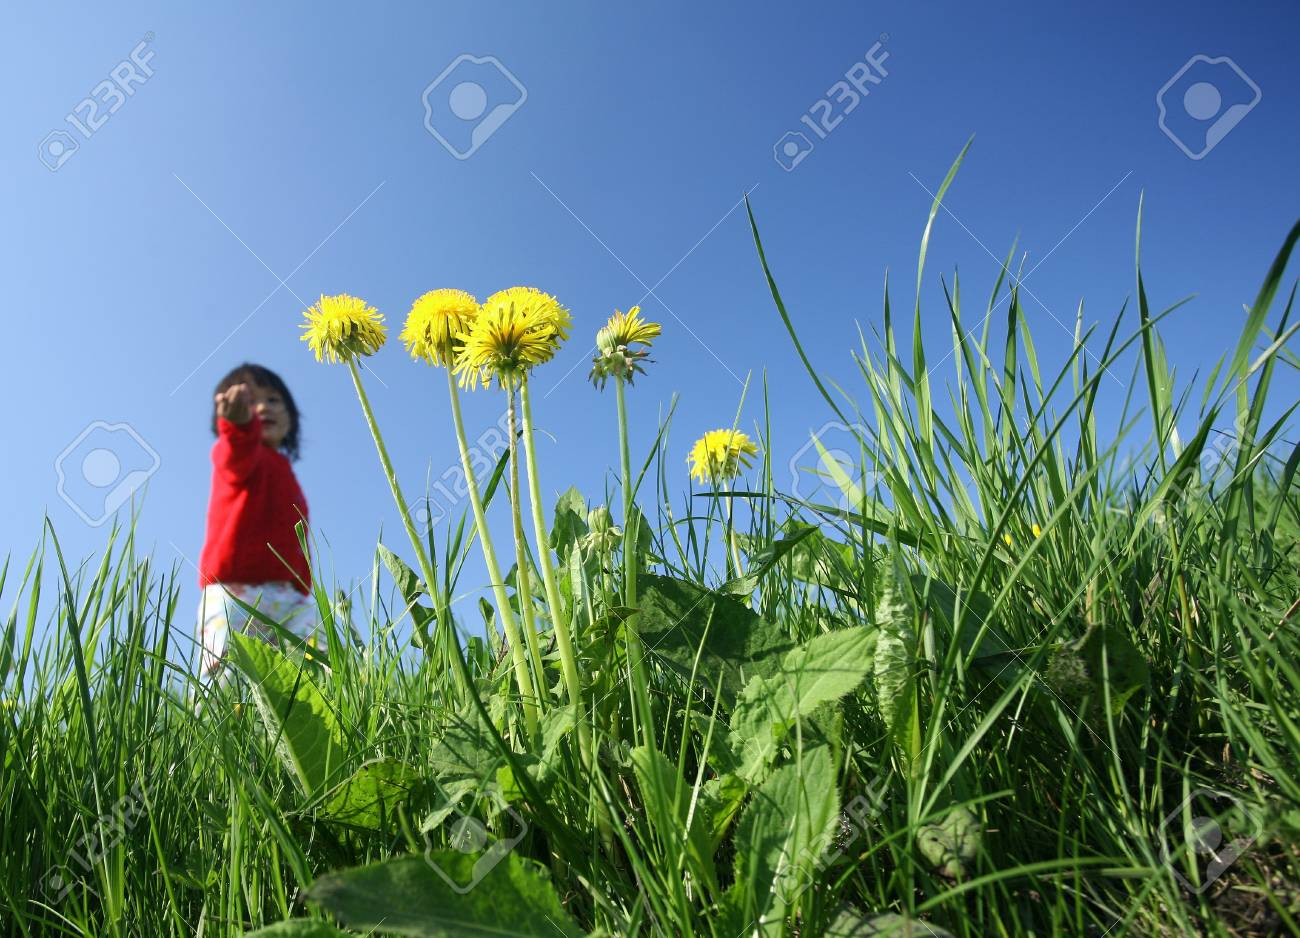 spring  in the countryside  in denmark, a green field with dandelions and child playing in background Stock Photo - 10071061